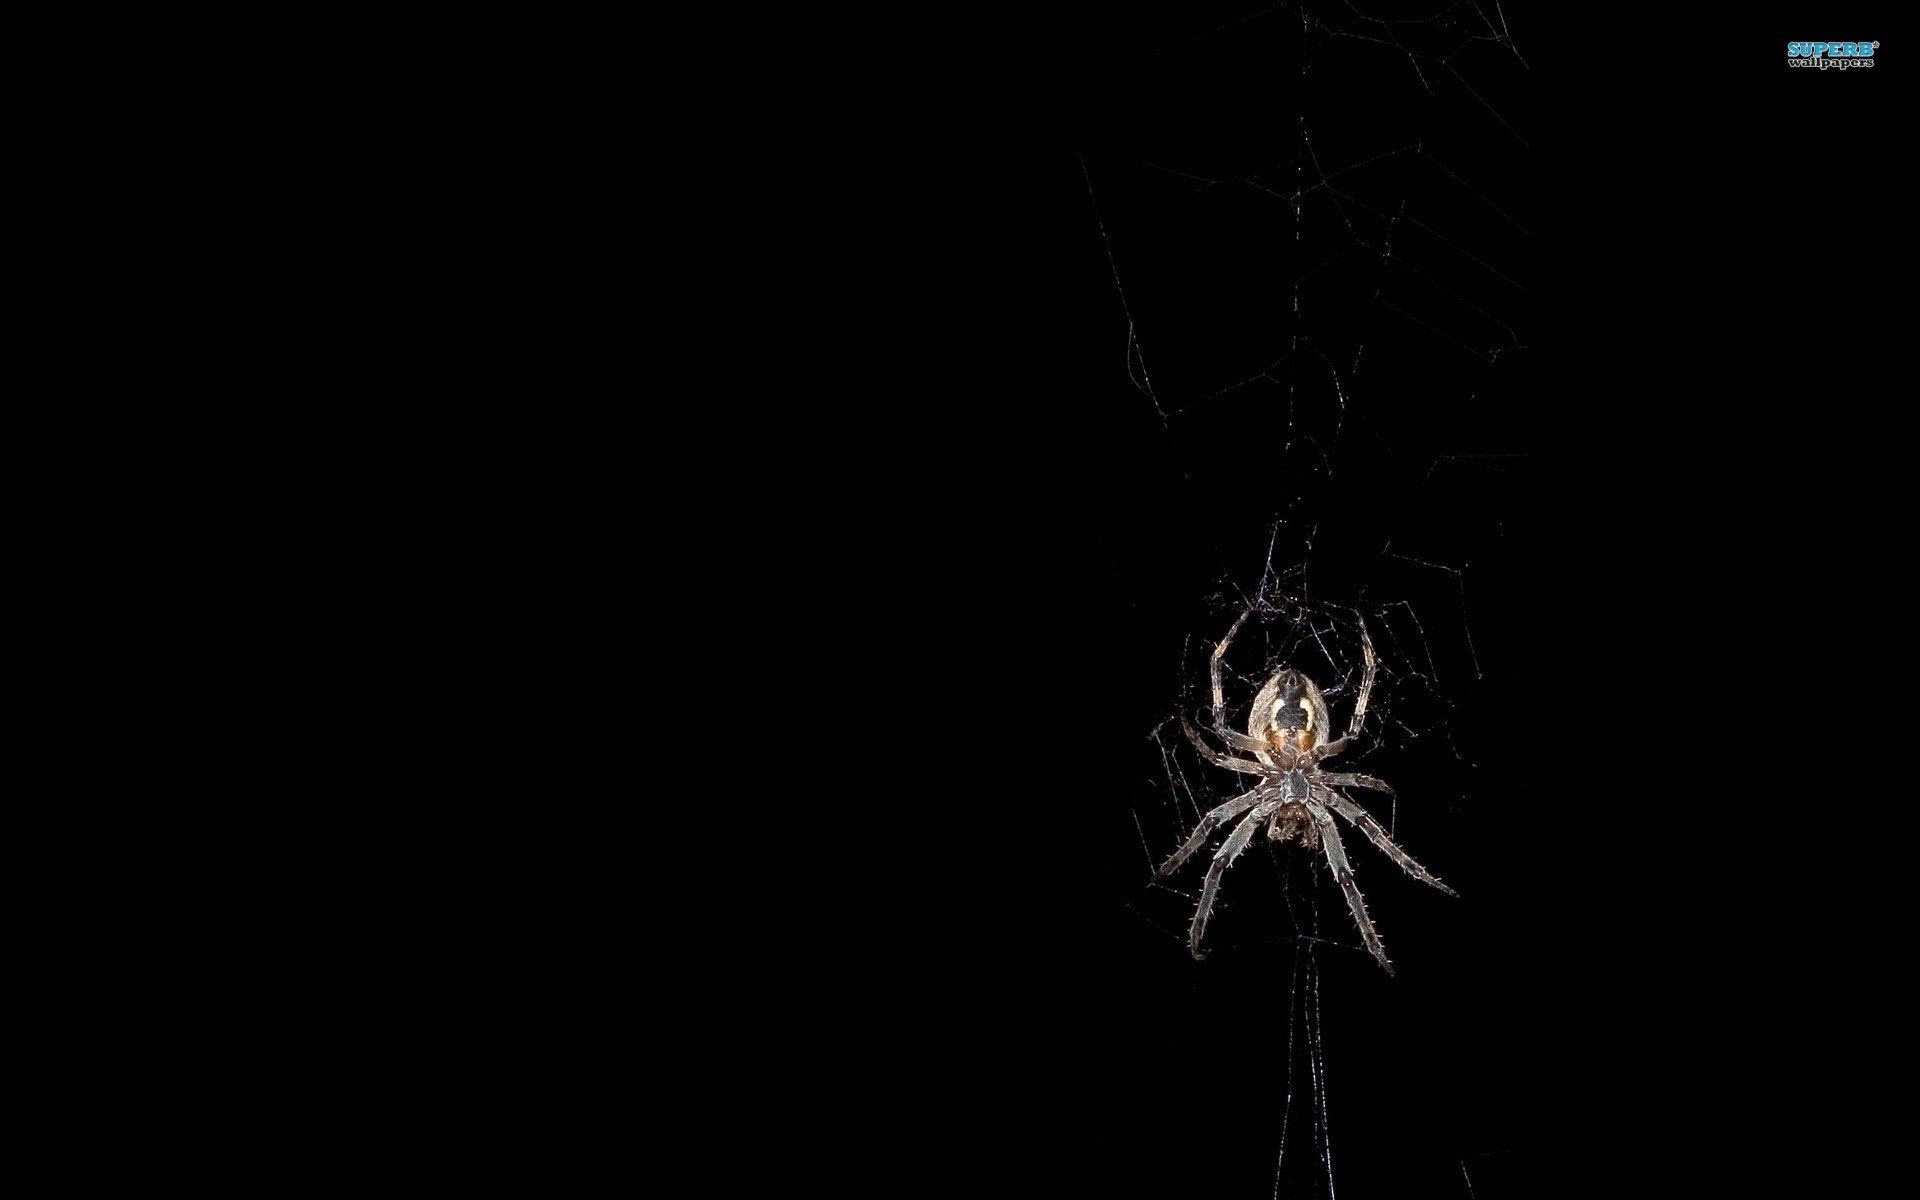 know all of you like to watch spiders on television but not real 1920x1200